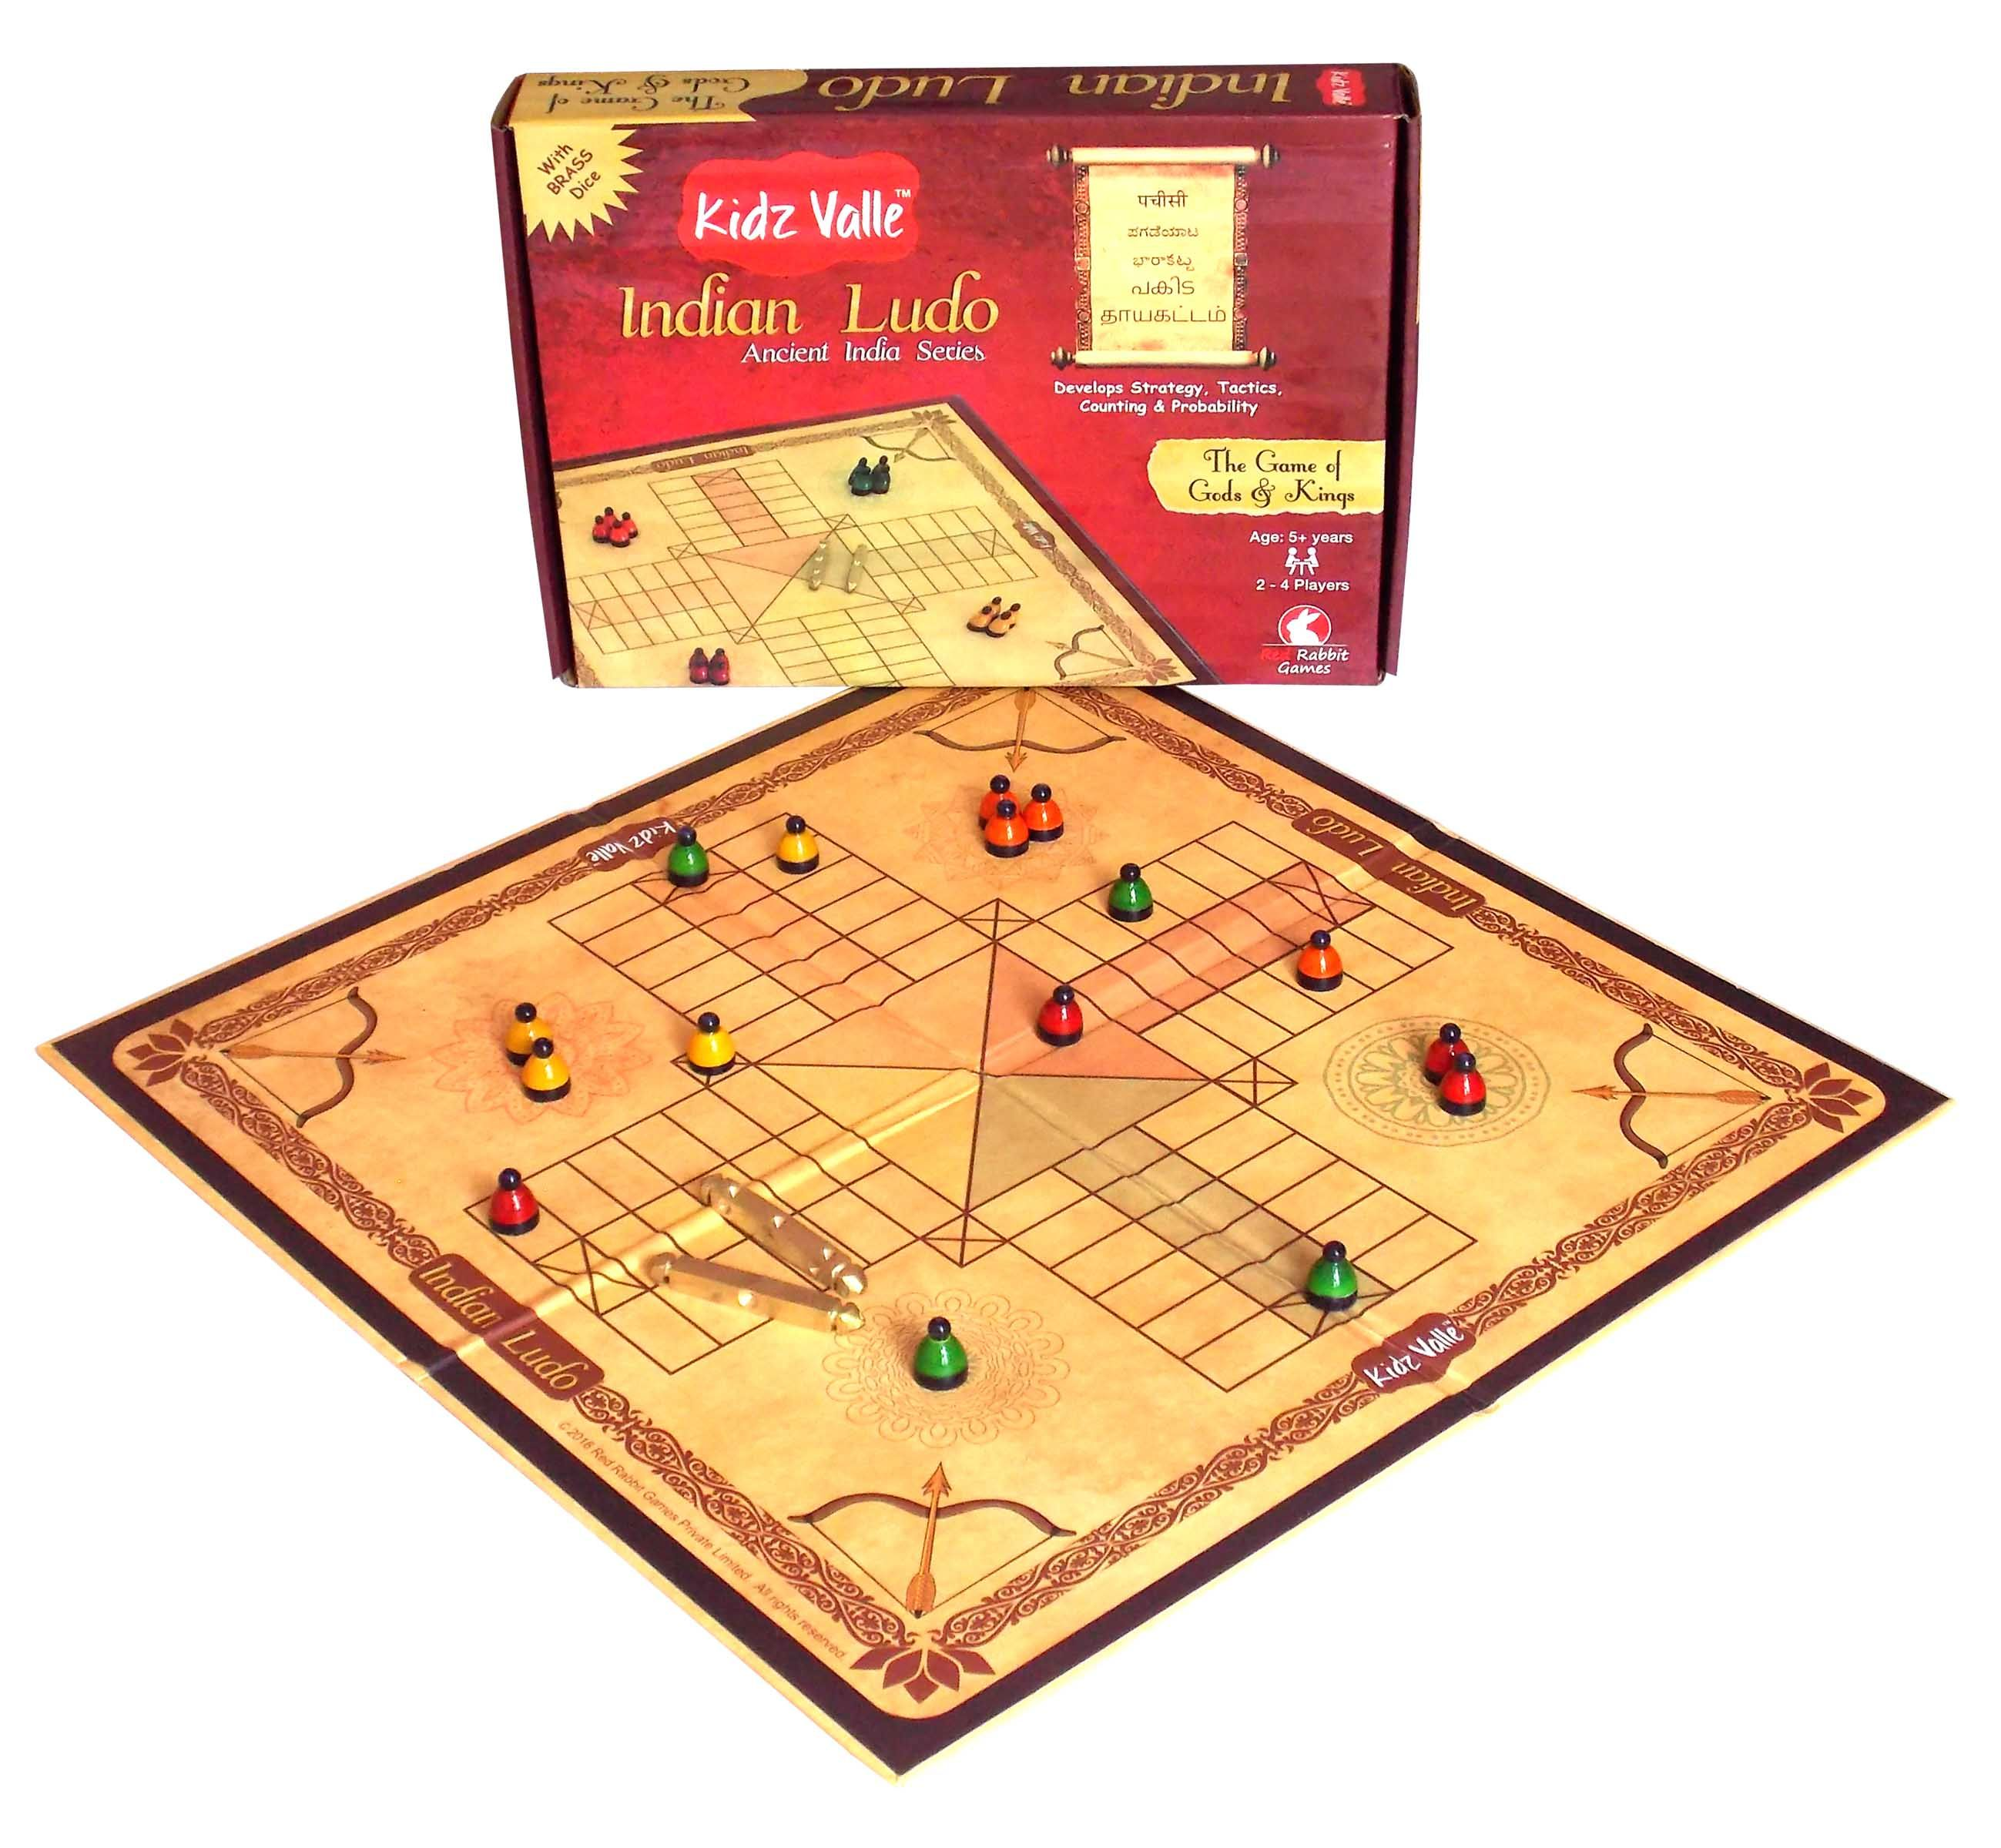 Kidz Valle Indian Ludo, Pachisi, Pagadeyaata , Barakatta, Ancient